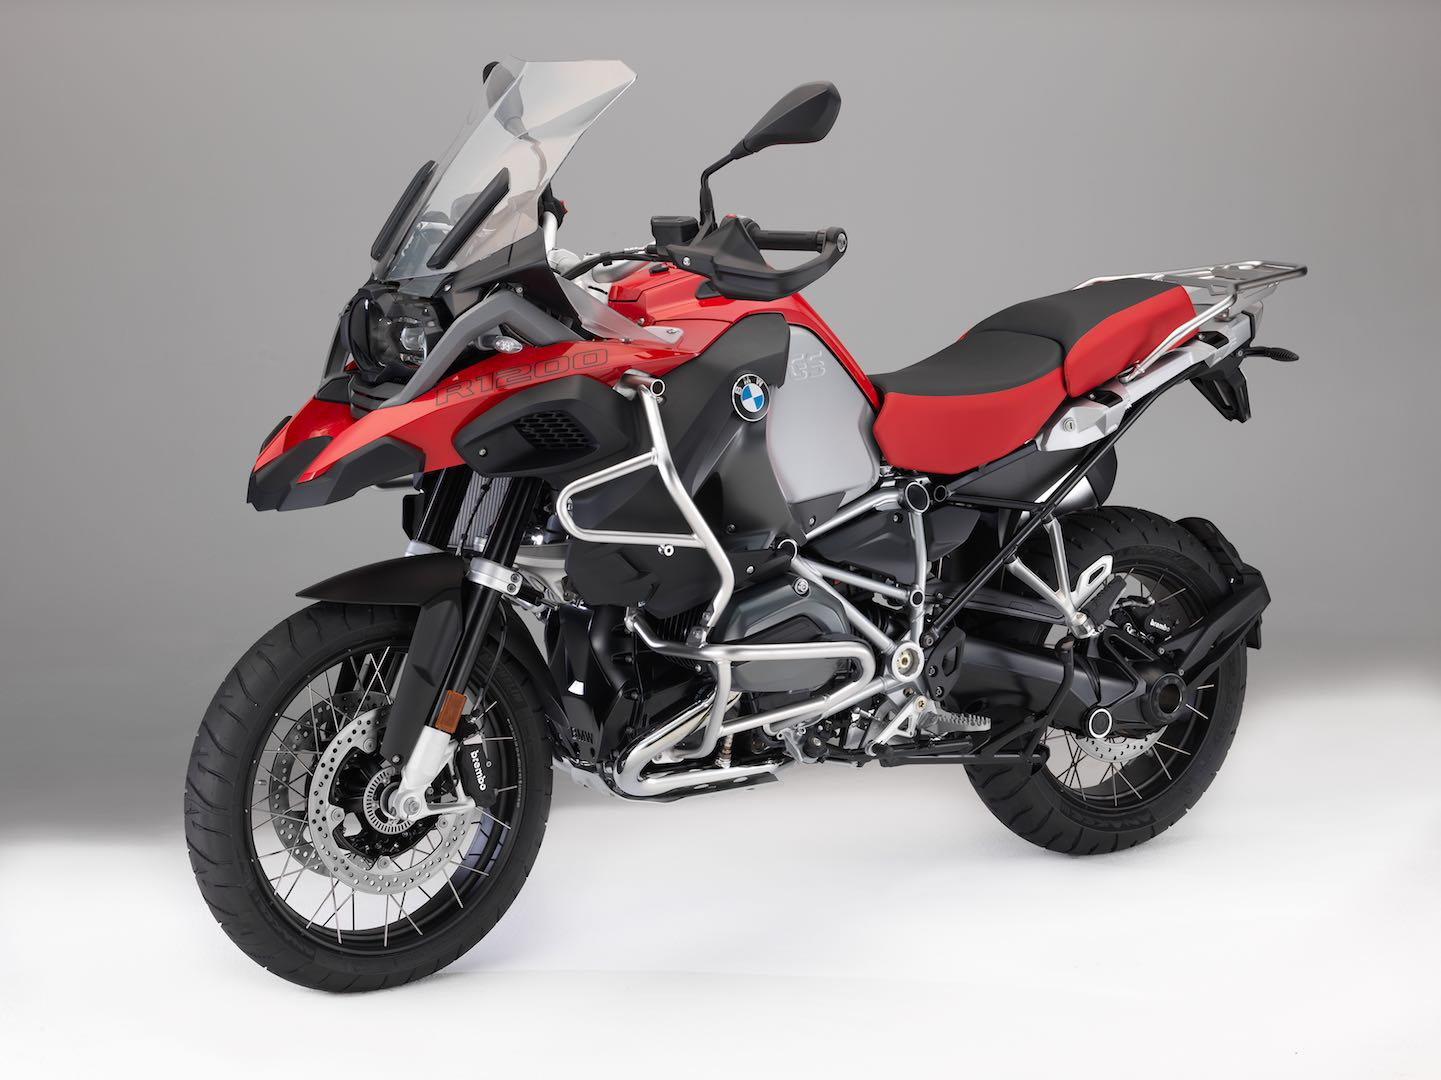 2018 bmw r 1200 gs adventure buyer 39 s guide specs price. Cars Review. Best American Auto & Cars Review